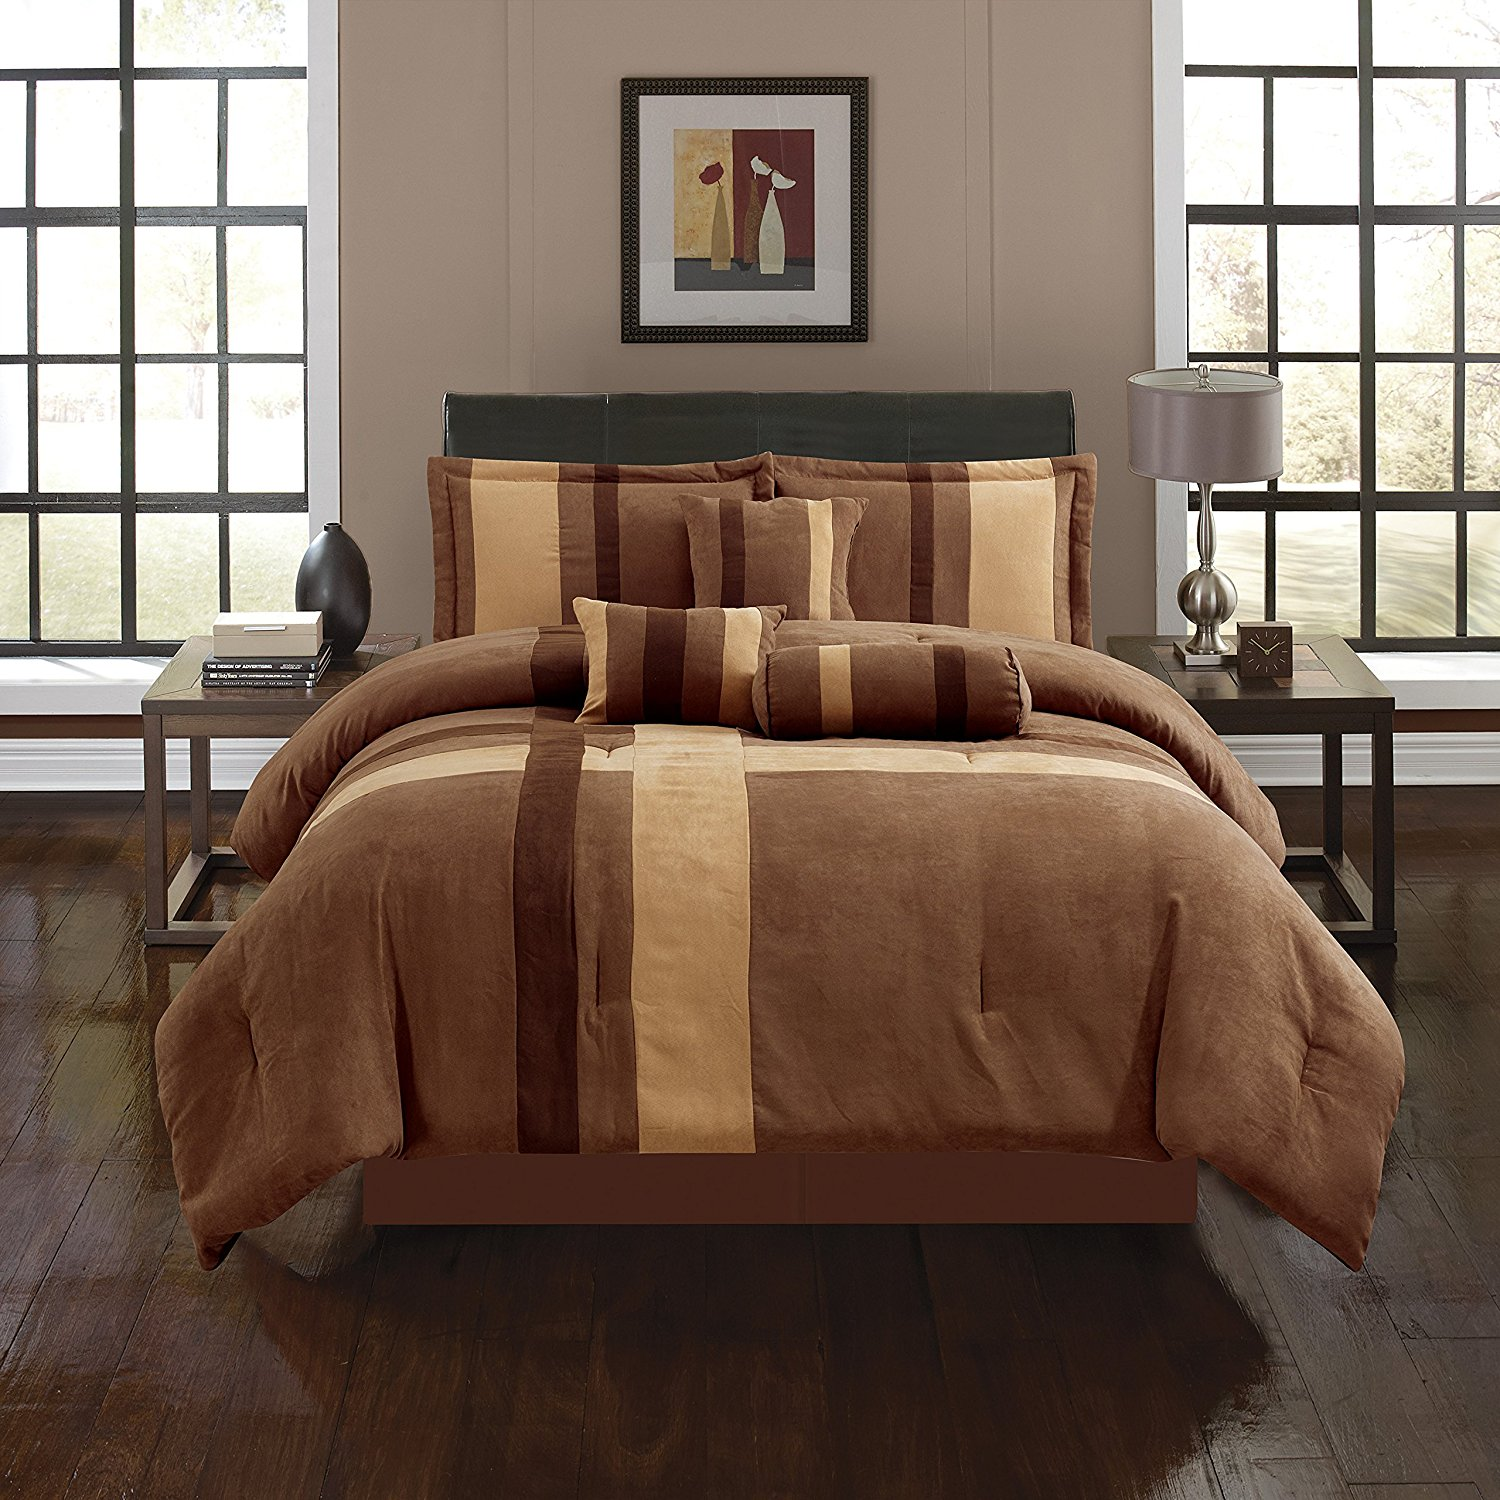 Empire Home Brown & Taupe Cross 7 Piece Solid Suede Soft Comforter Set (Queen Size)